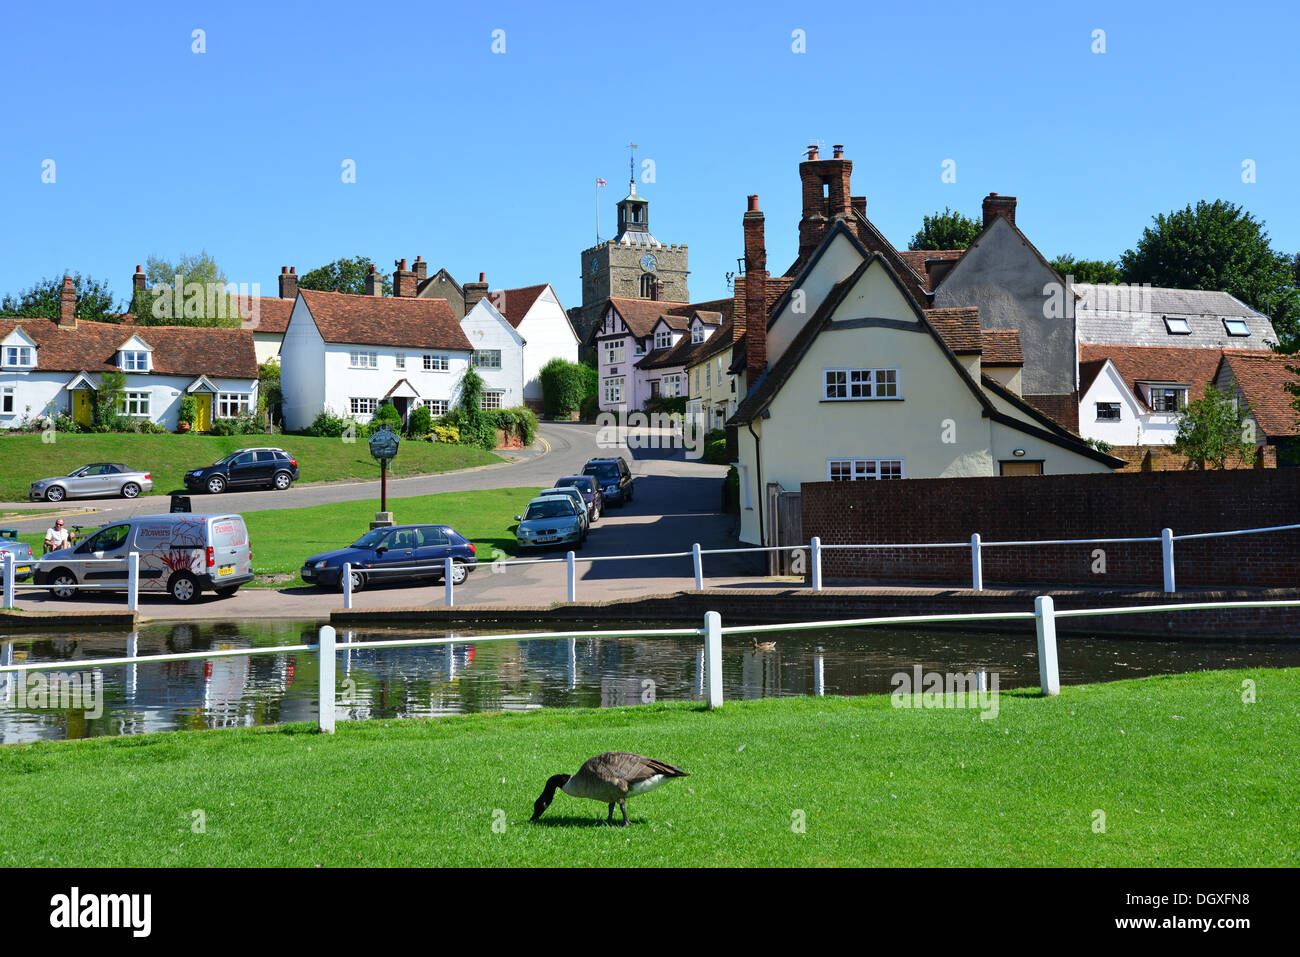 Essex United Kingdom  City new picture : Village Green And Pond, Finchingfield, Essex, England, United Kingdom ...